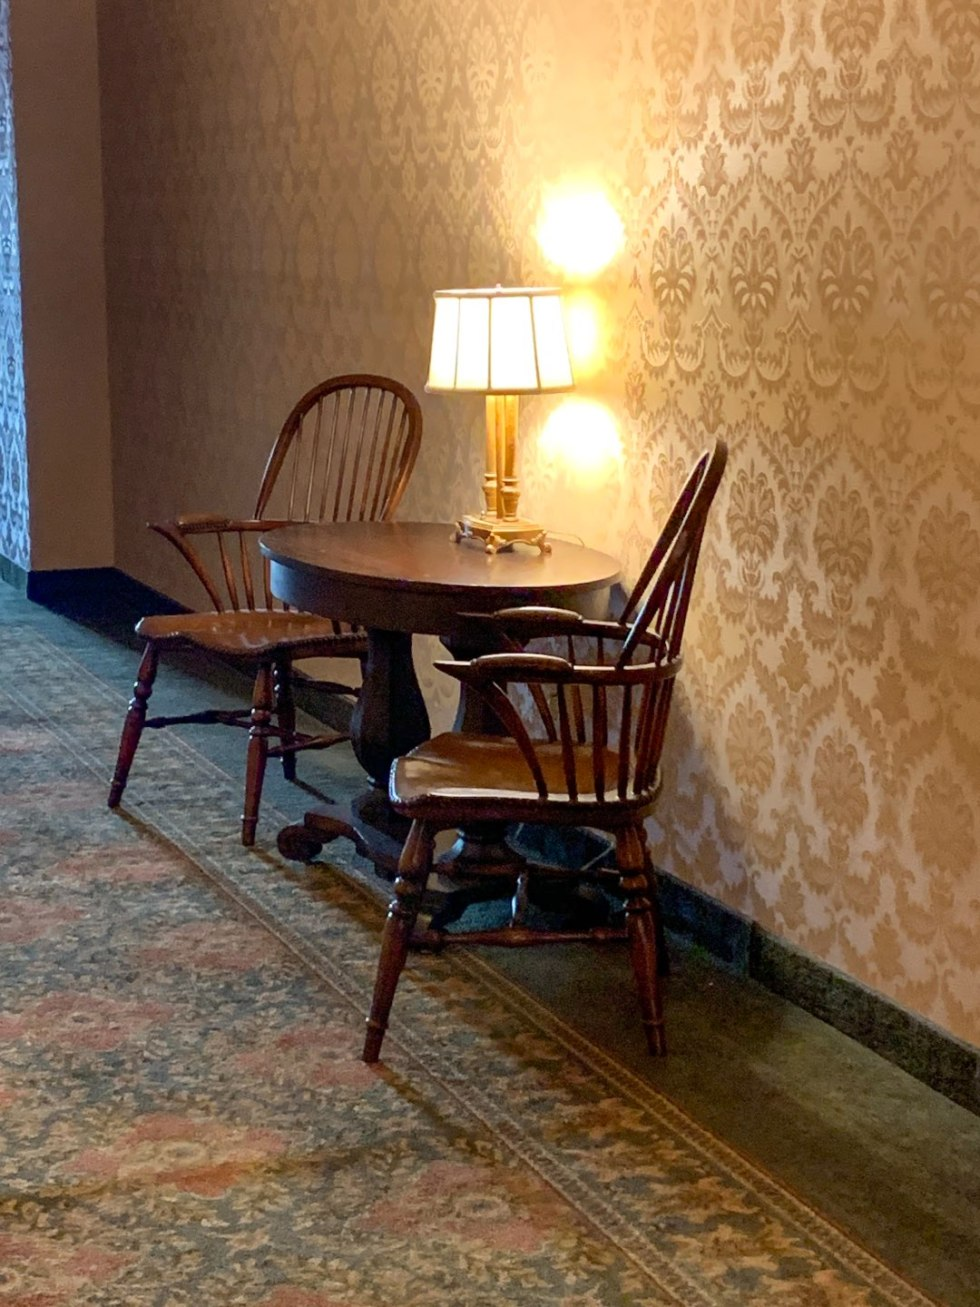 A Night at the O.Henry Hotel In Greensboro, NC - I'm Fixin' To - @mbg0112 | A Night at the O.Henry Hotel In Greensboro, NC by popular North Carolina blog, I'm fixin' To: image of a table with a lamp on it and two chairs in a hallway at the O. Henry Hotel.